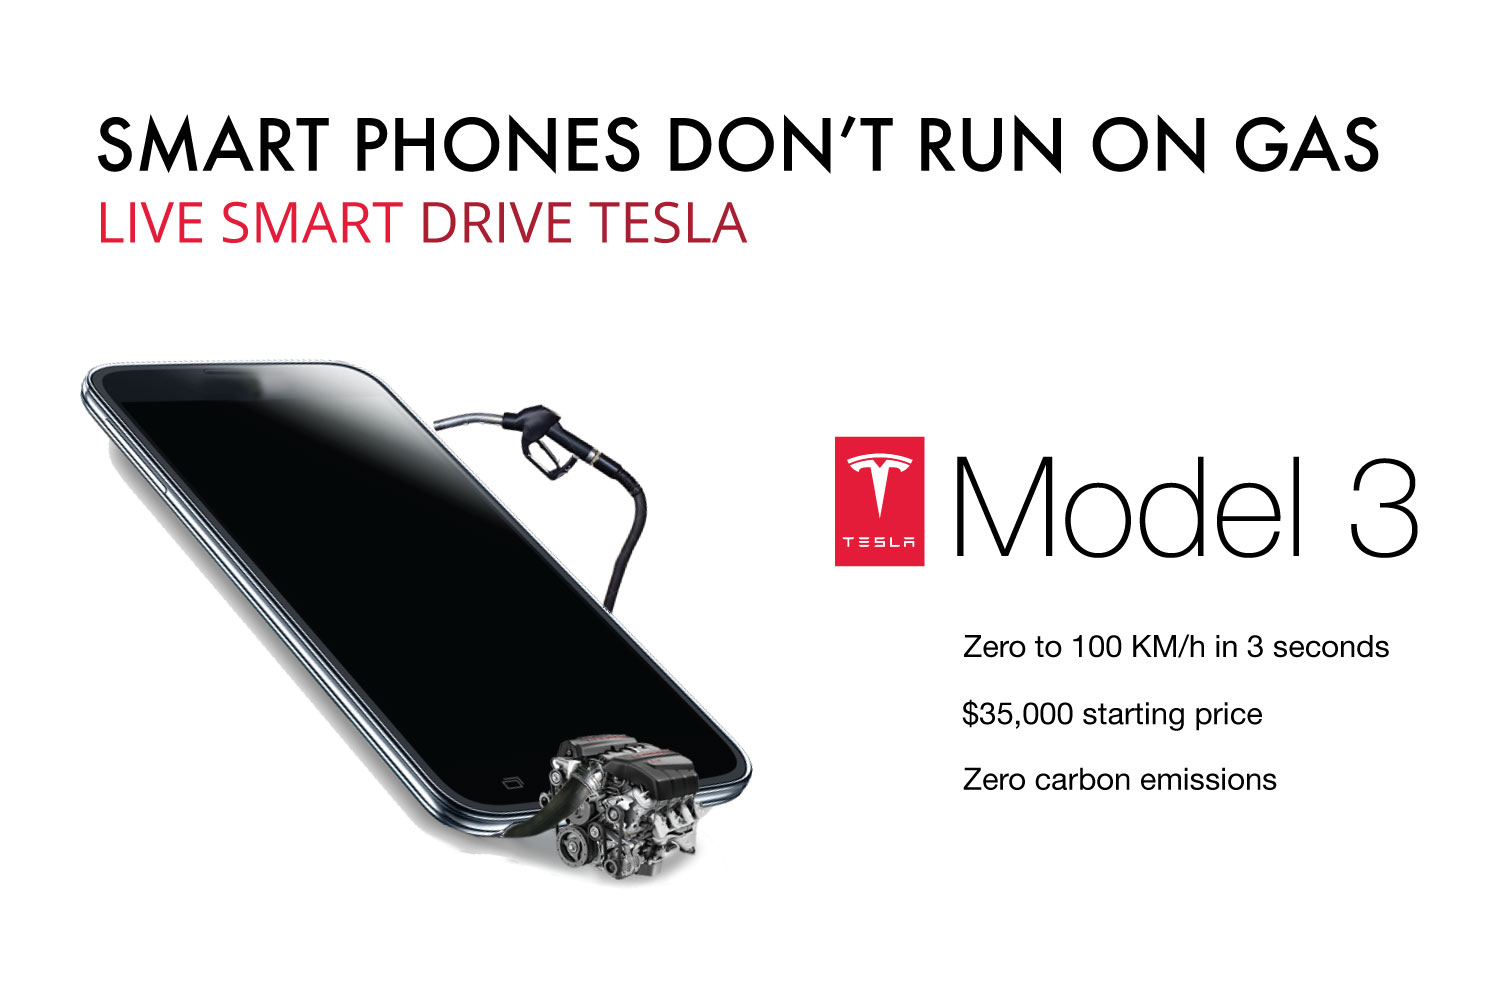 smartphones don't run on gas mock ad campaign